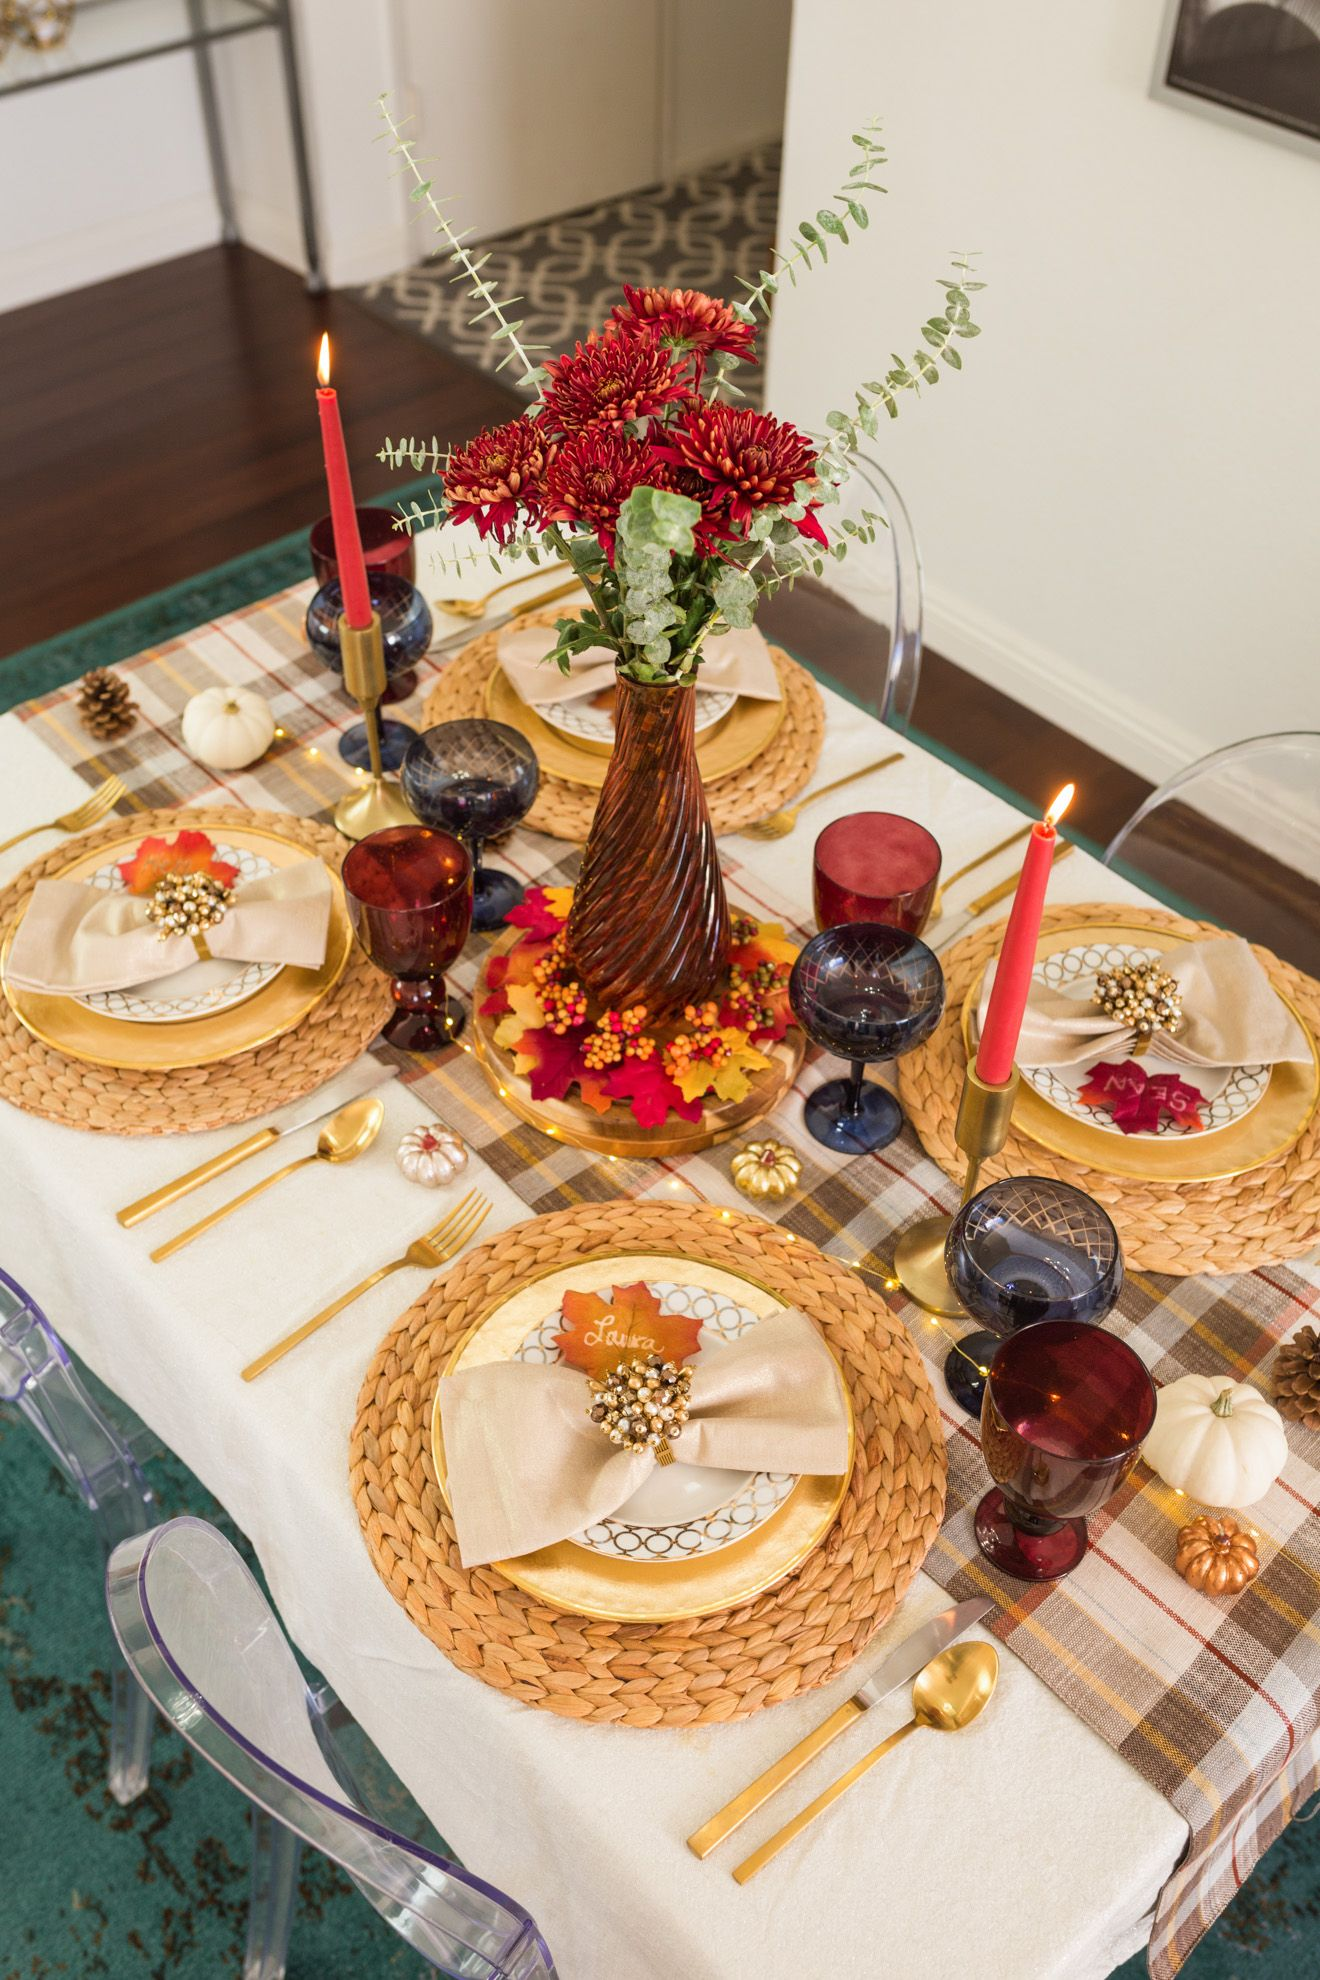 5 Easy Thanksgiving Table Setting Ideas Holidays Laura Lily Thanksgiving Table Settings Elegant Thanksgiving Table Settings Thanksgiving Table Settings Simple